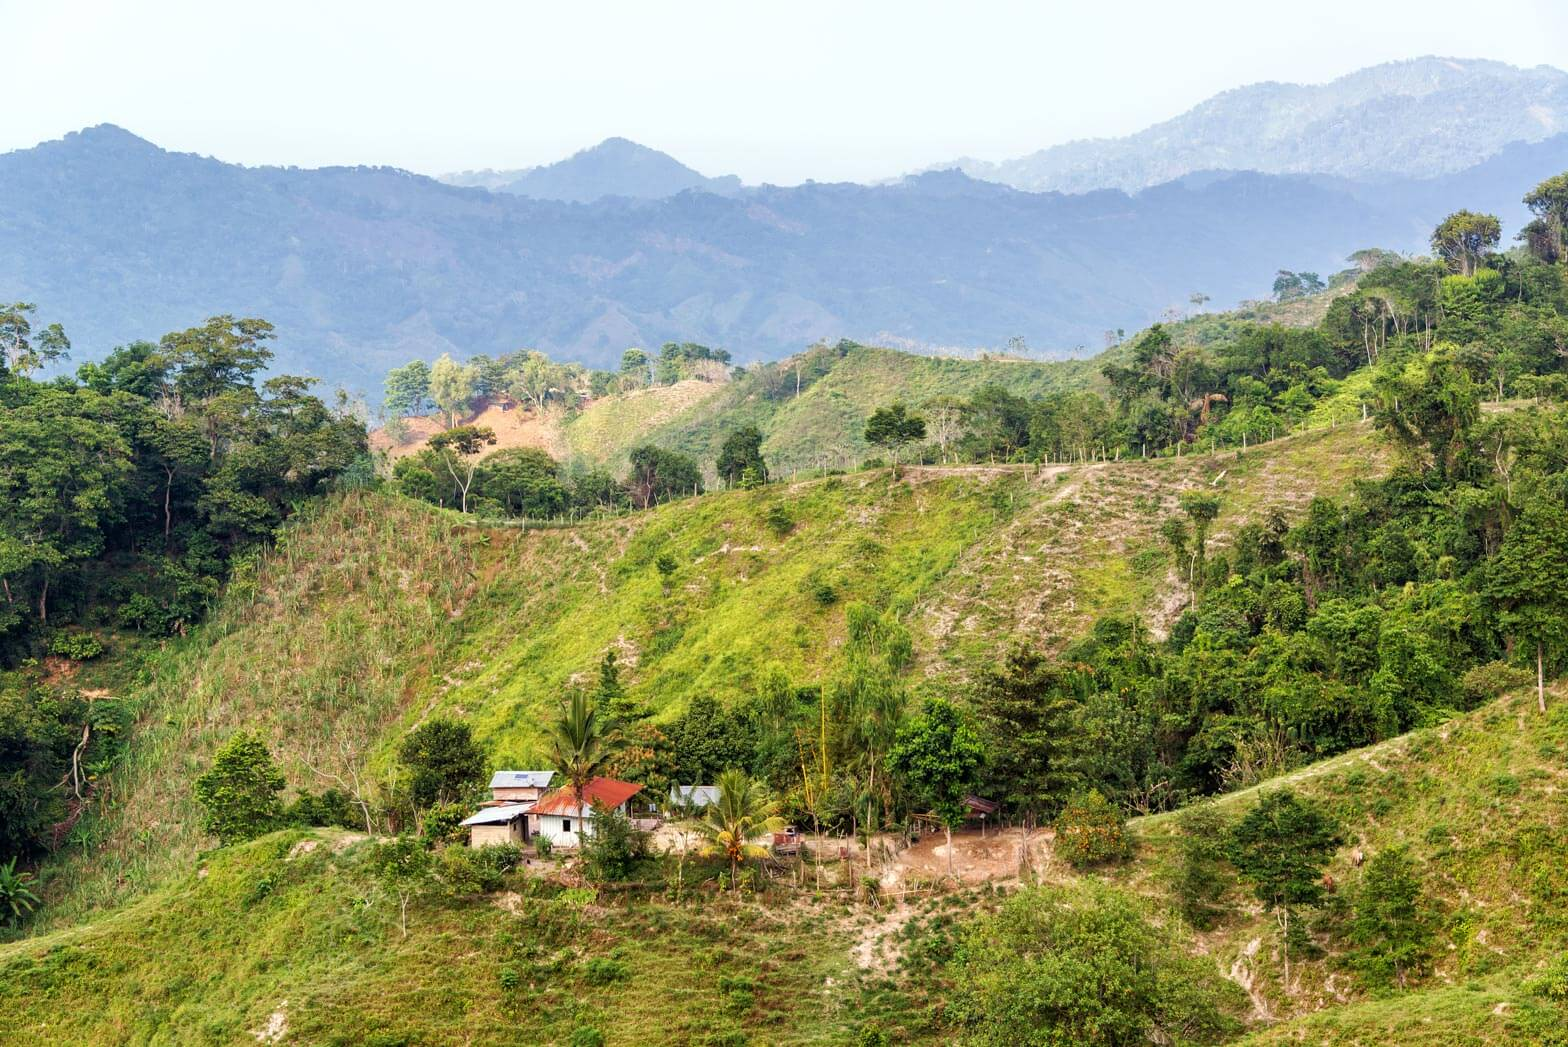 Green hills in Colombia